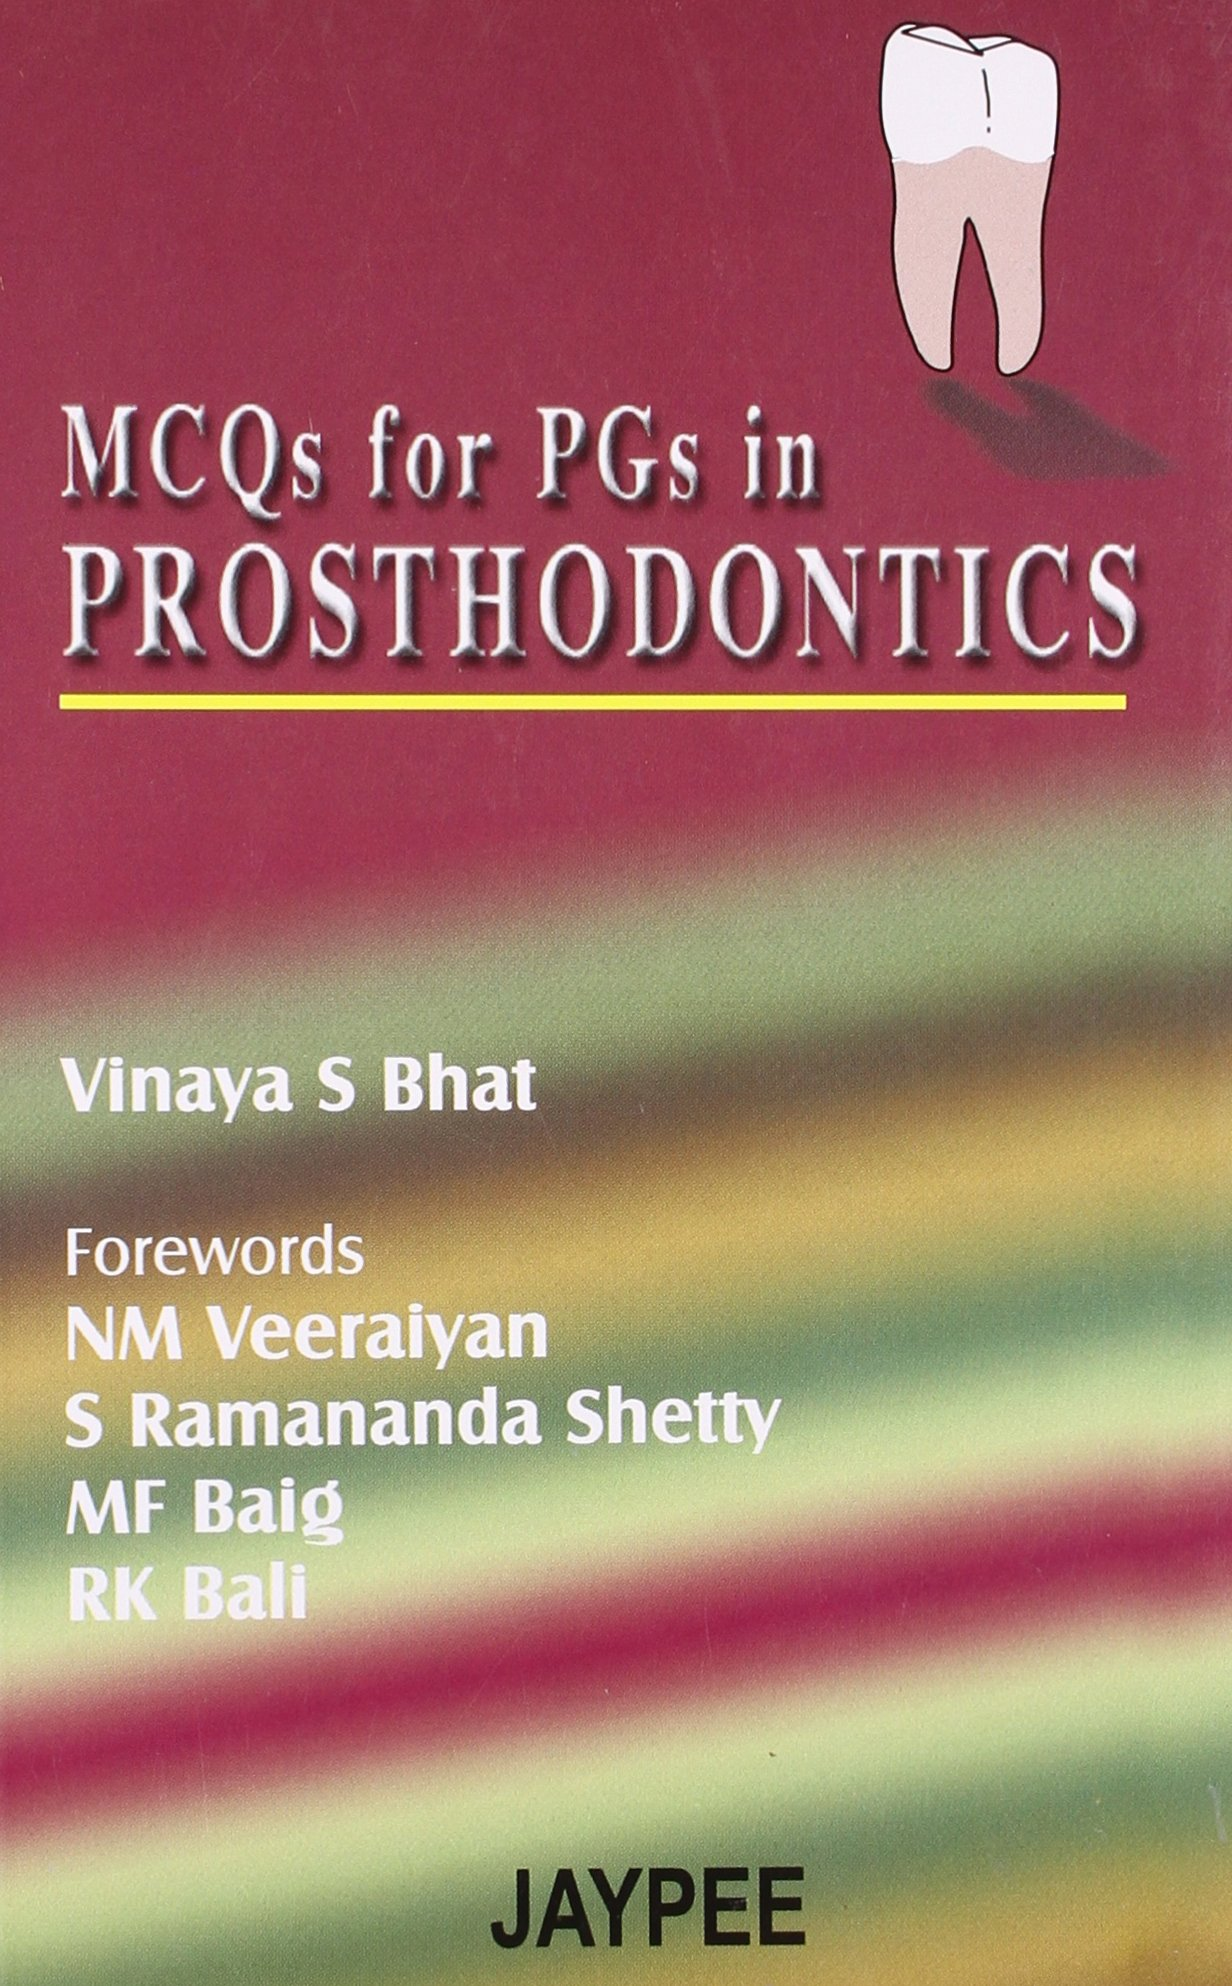 Buy Mcqs For Pgs In Prosthodontics Book Online at Low Prices in ...